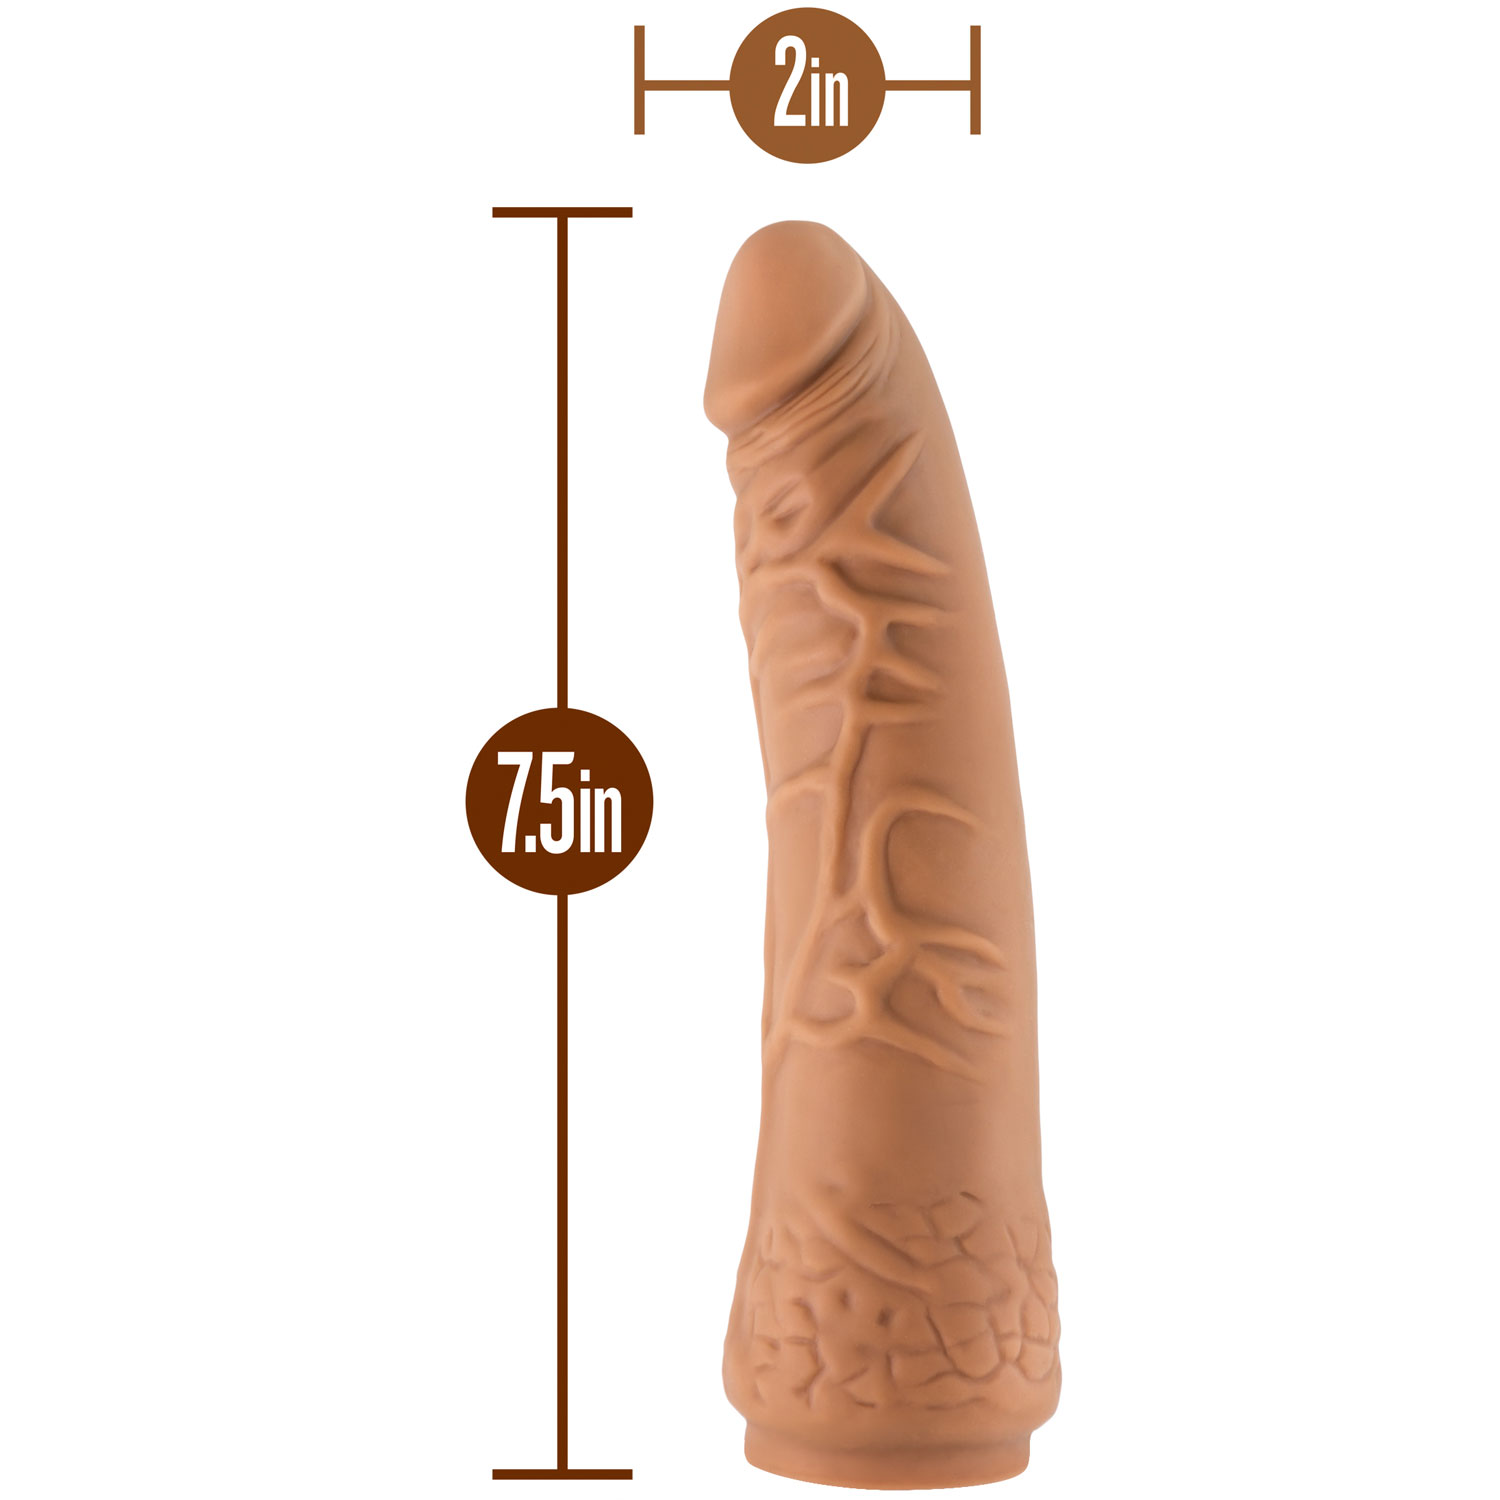 The Realm Realistic 7.5 Inch Silicone Lock On Dildo - Measurements